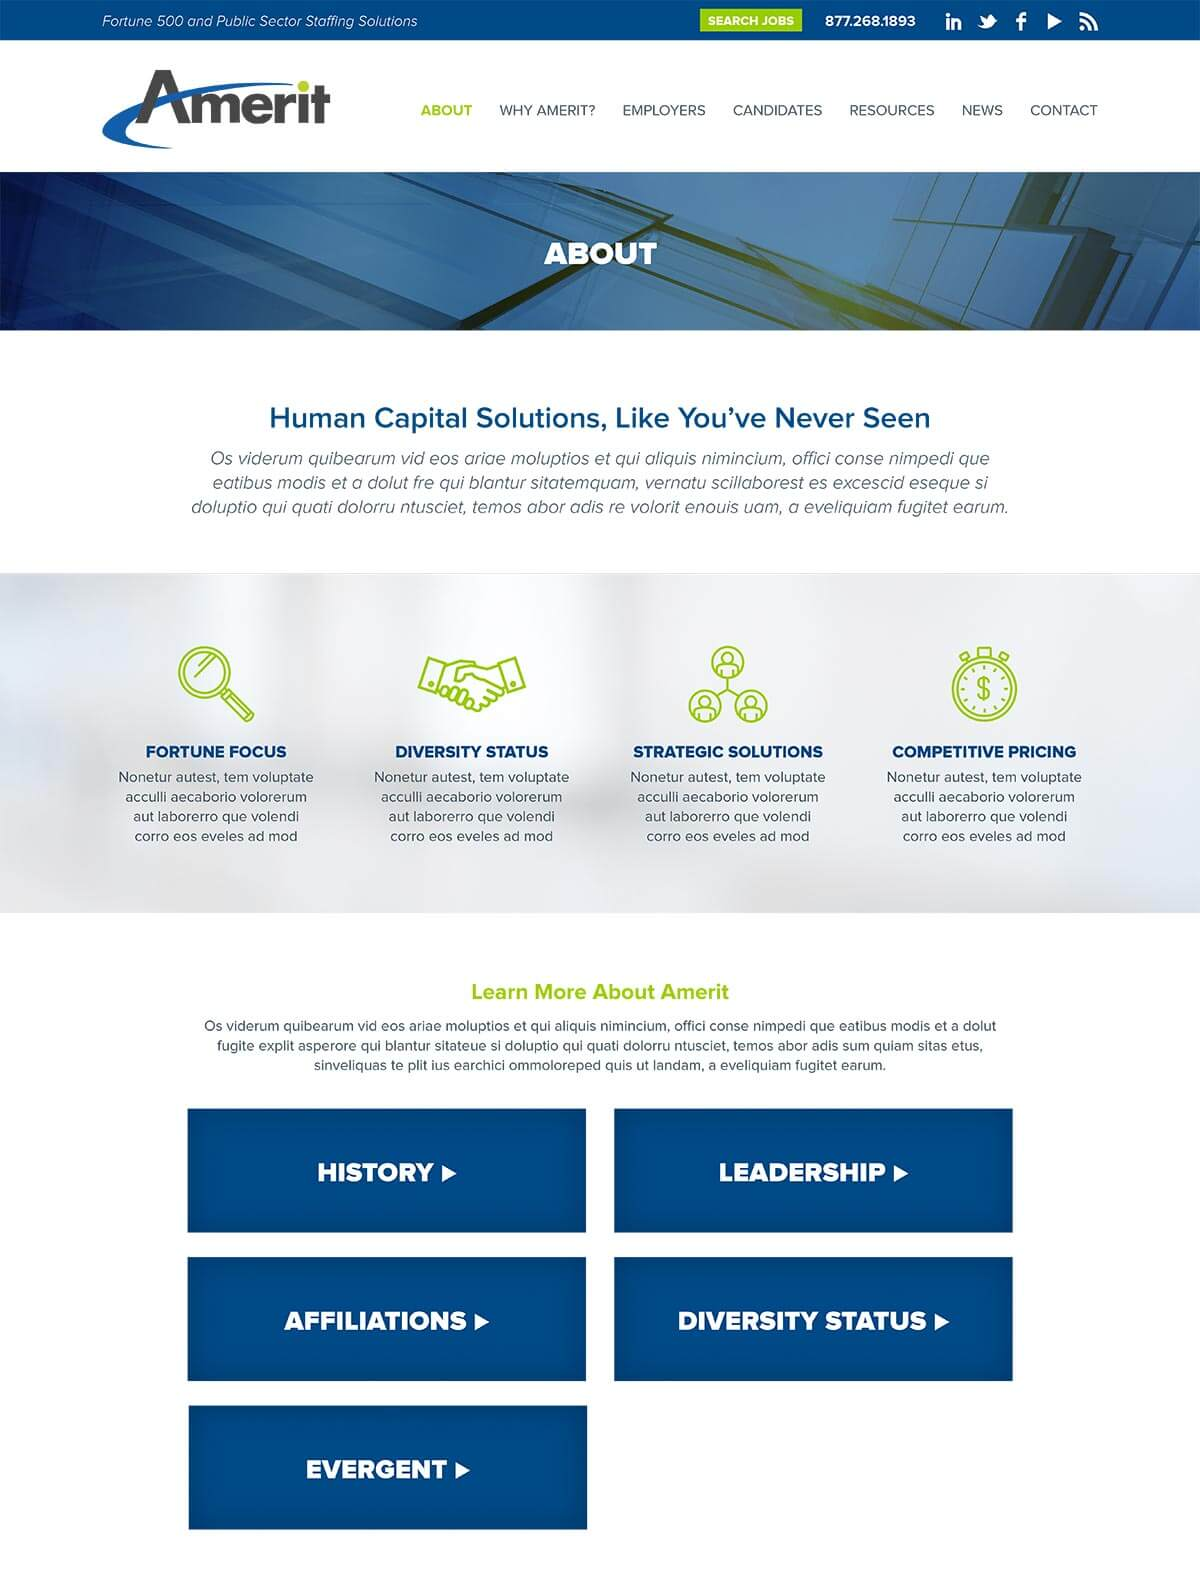 web design for consulting staffing firm staffing agency website consulting firm s unique value proposition communicating a clear message about differentiators to both client and candidate the new web design serves